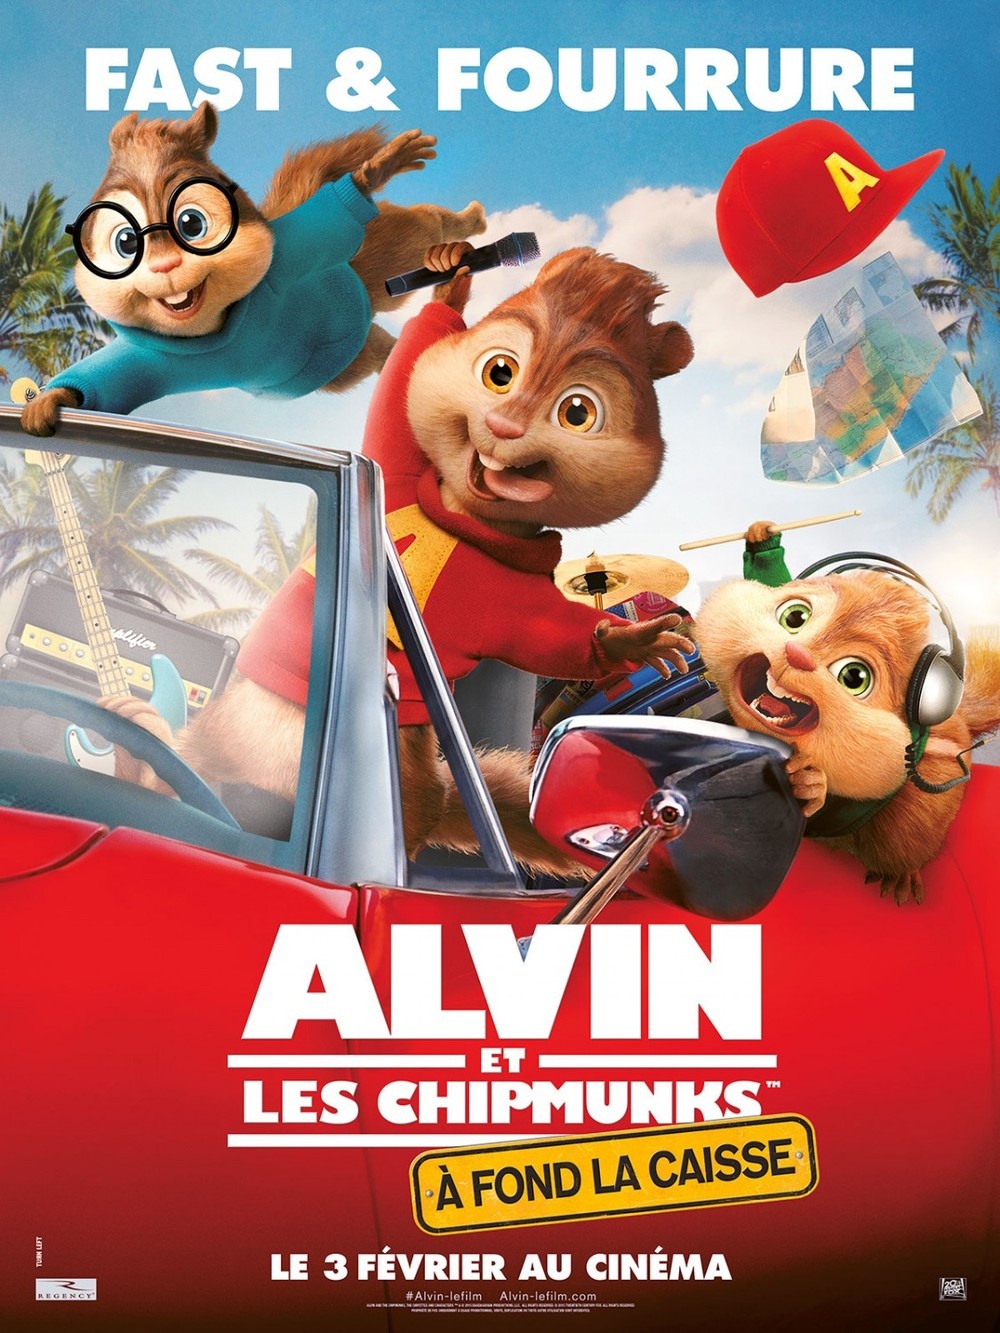 Alvin And The Chipmunks The Road Chip Dvd Release Date